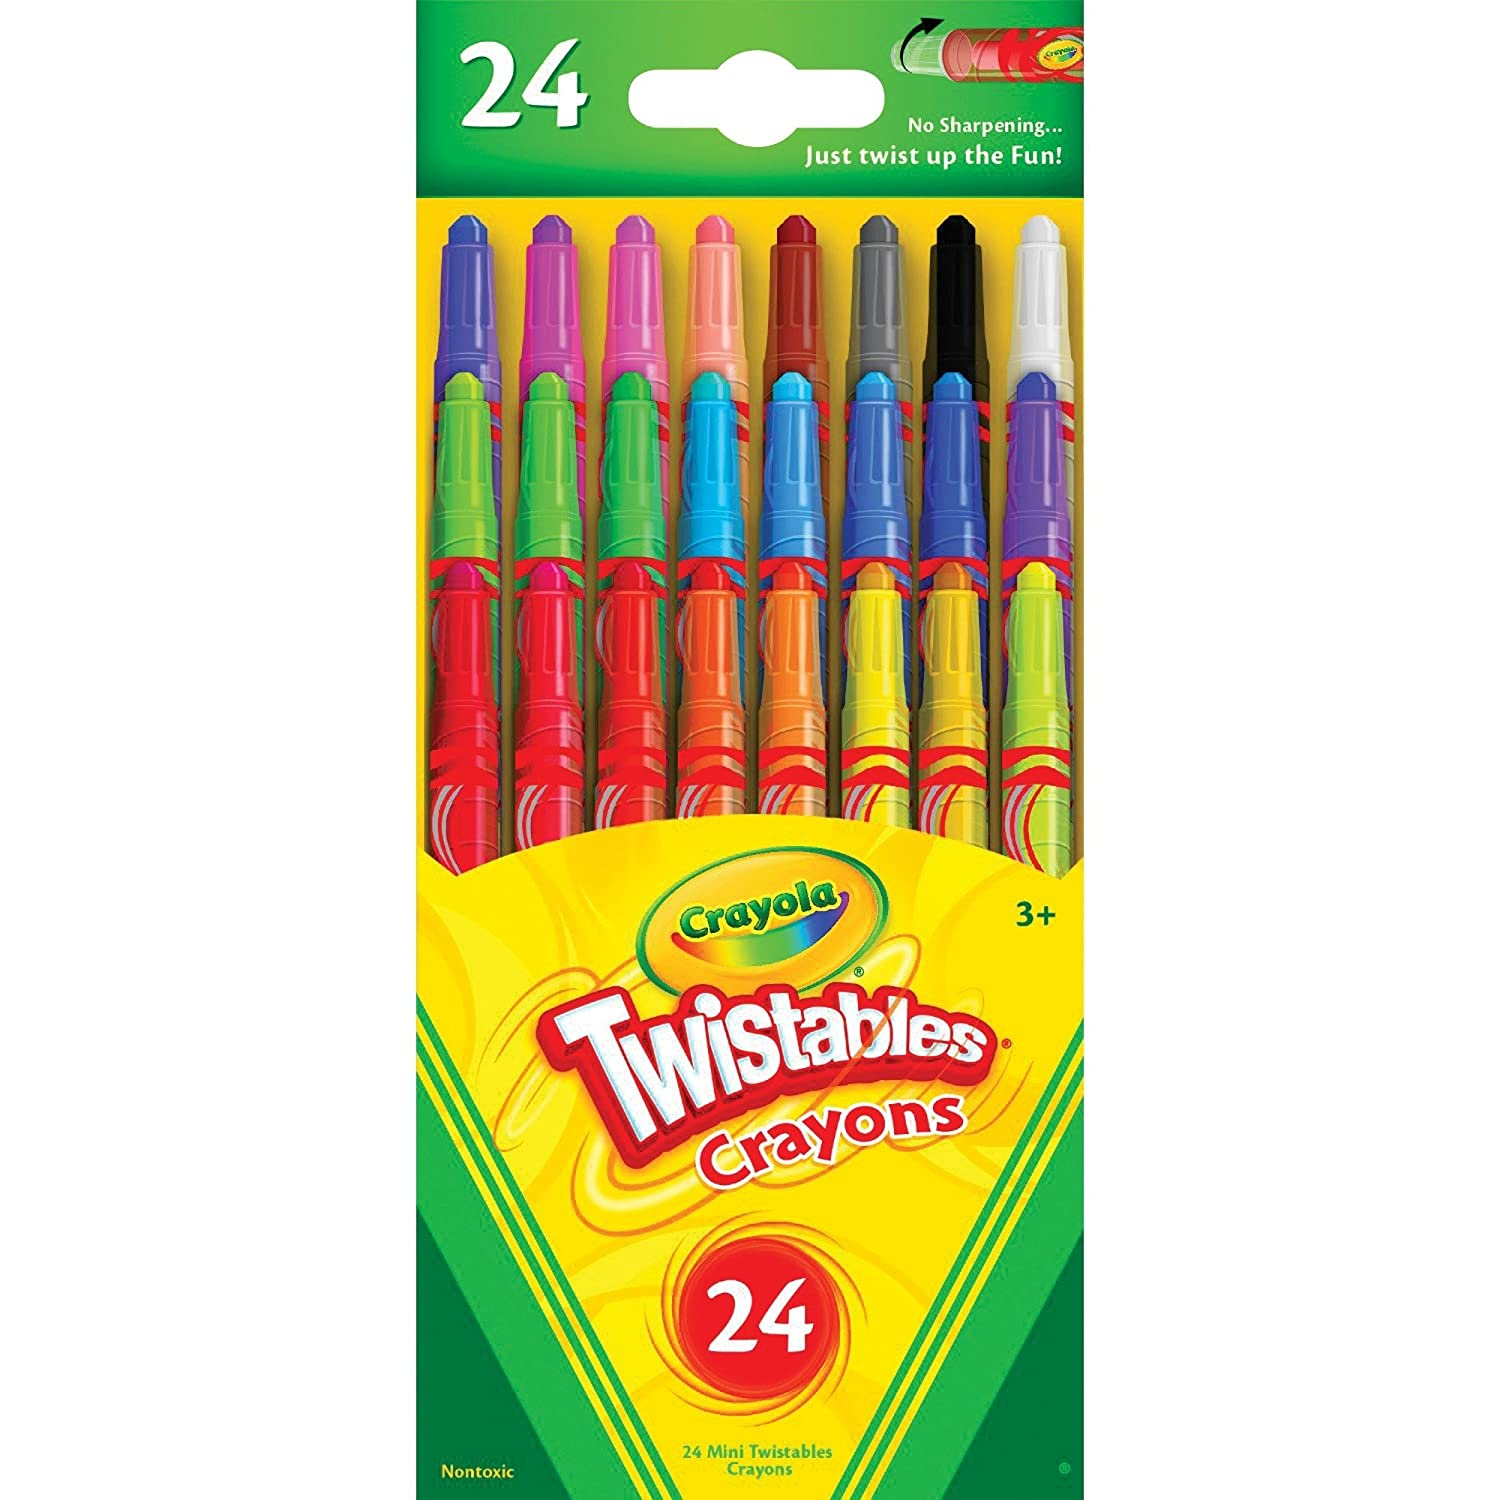 Buy Crayola Twistables Crayons 24CT (Pack of 4) Online at Low Prices ...